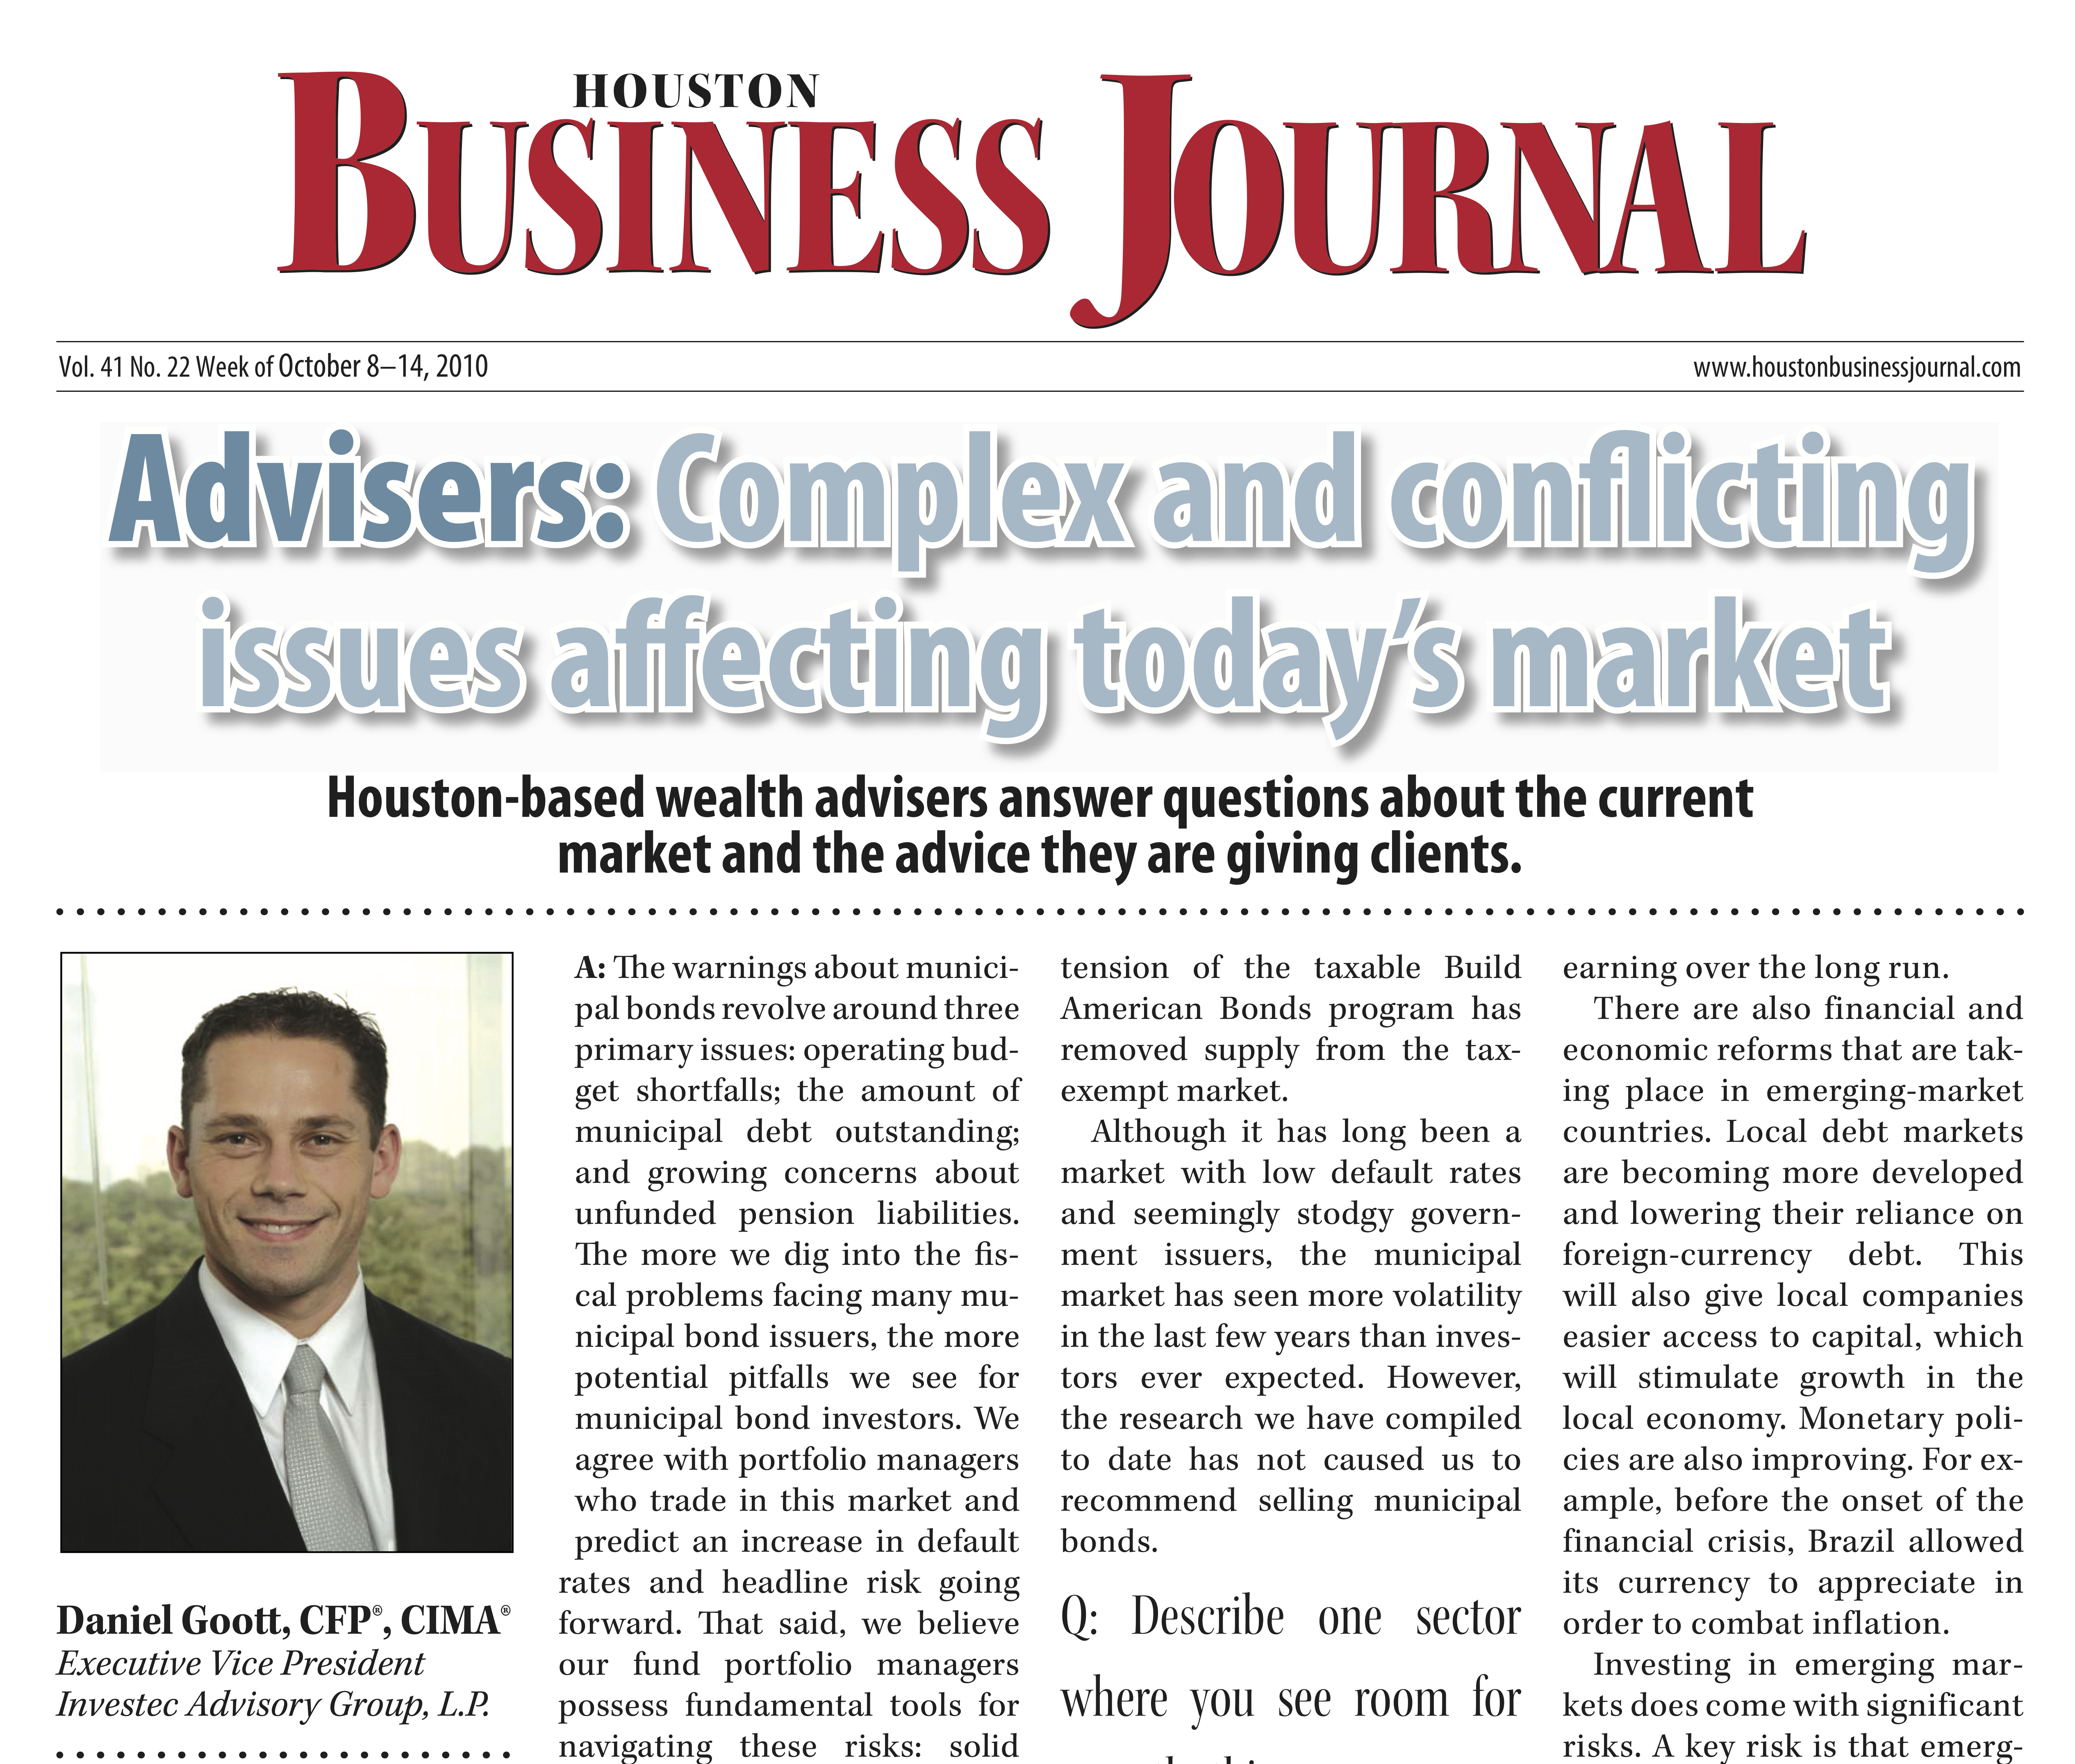 Investec - Houston Business Journal Press Feature, Advisers: Complex and Conflicting Issues Affecting Today's Market, 2010